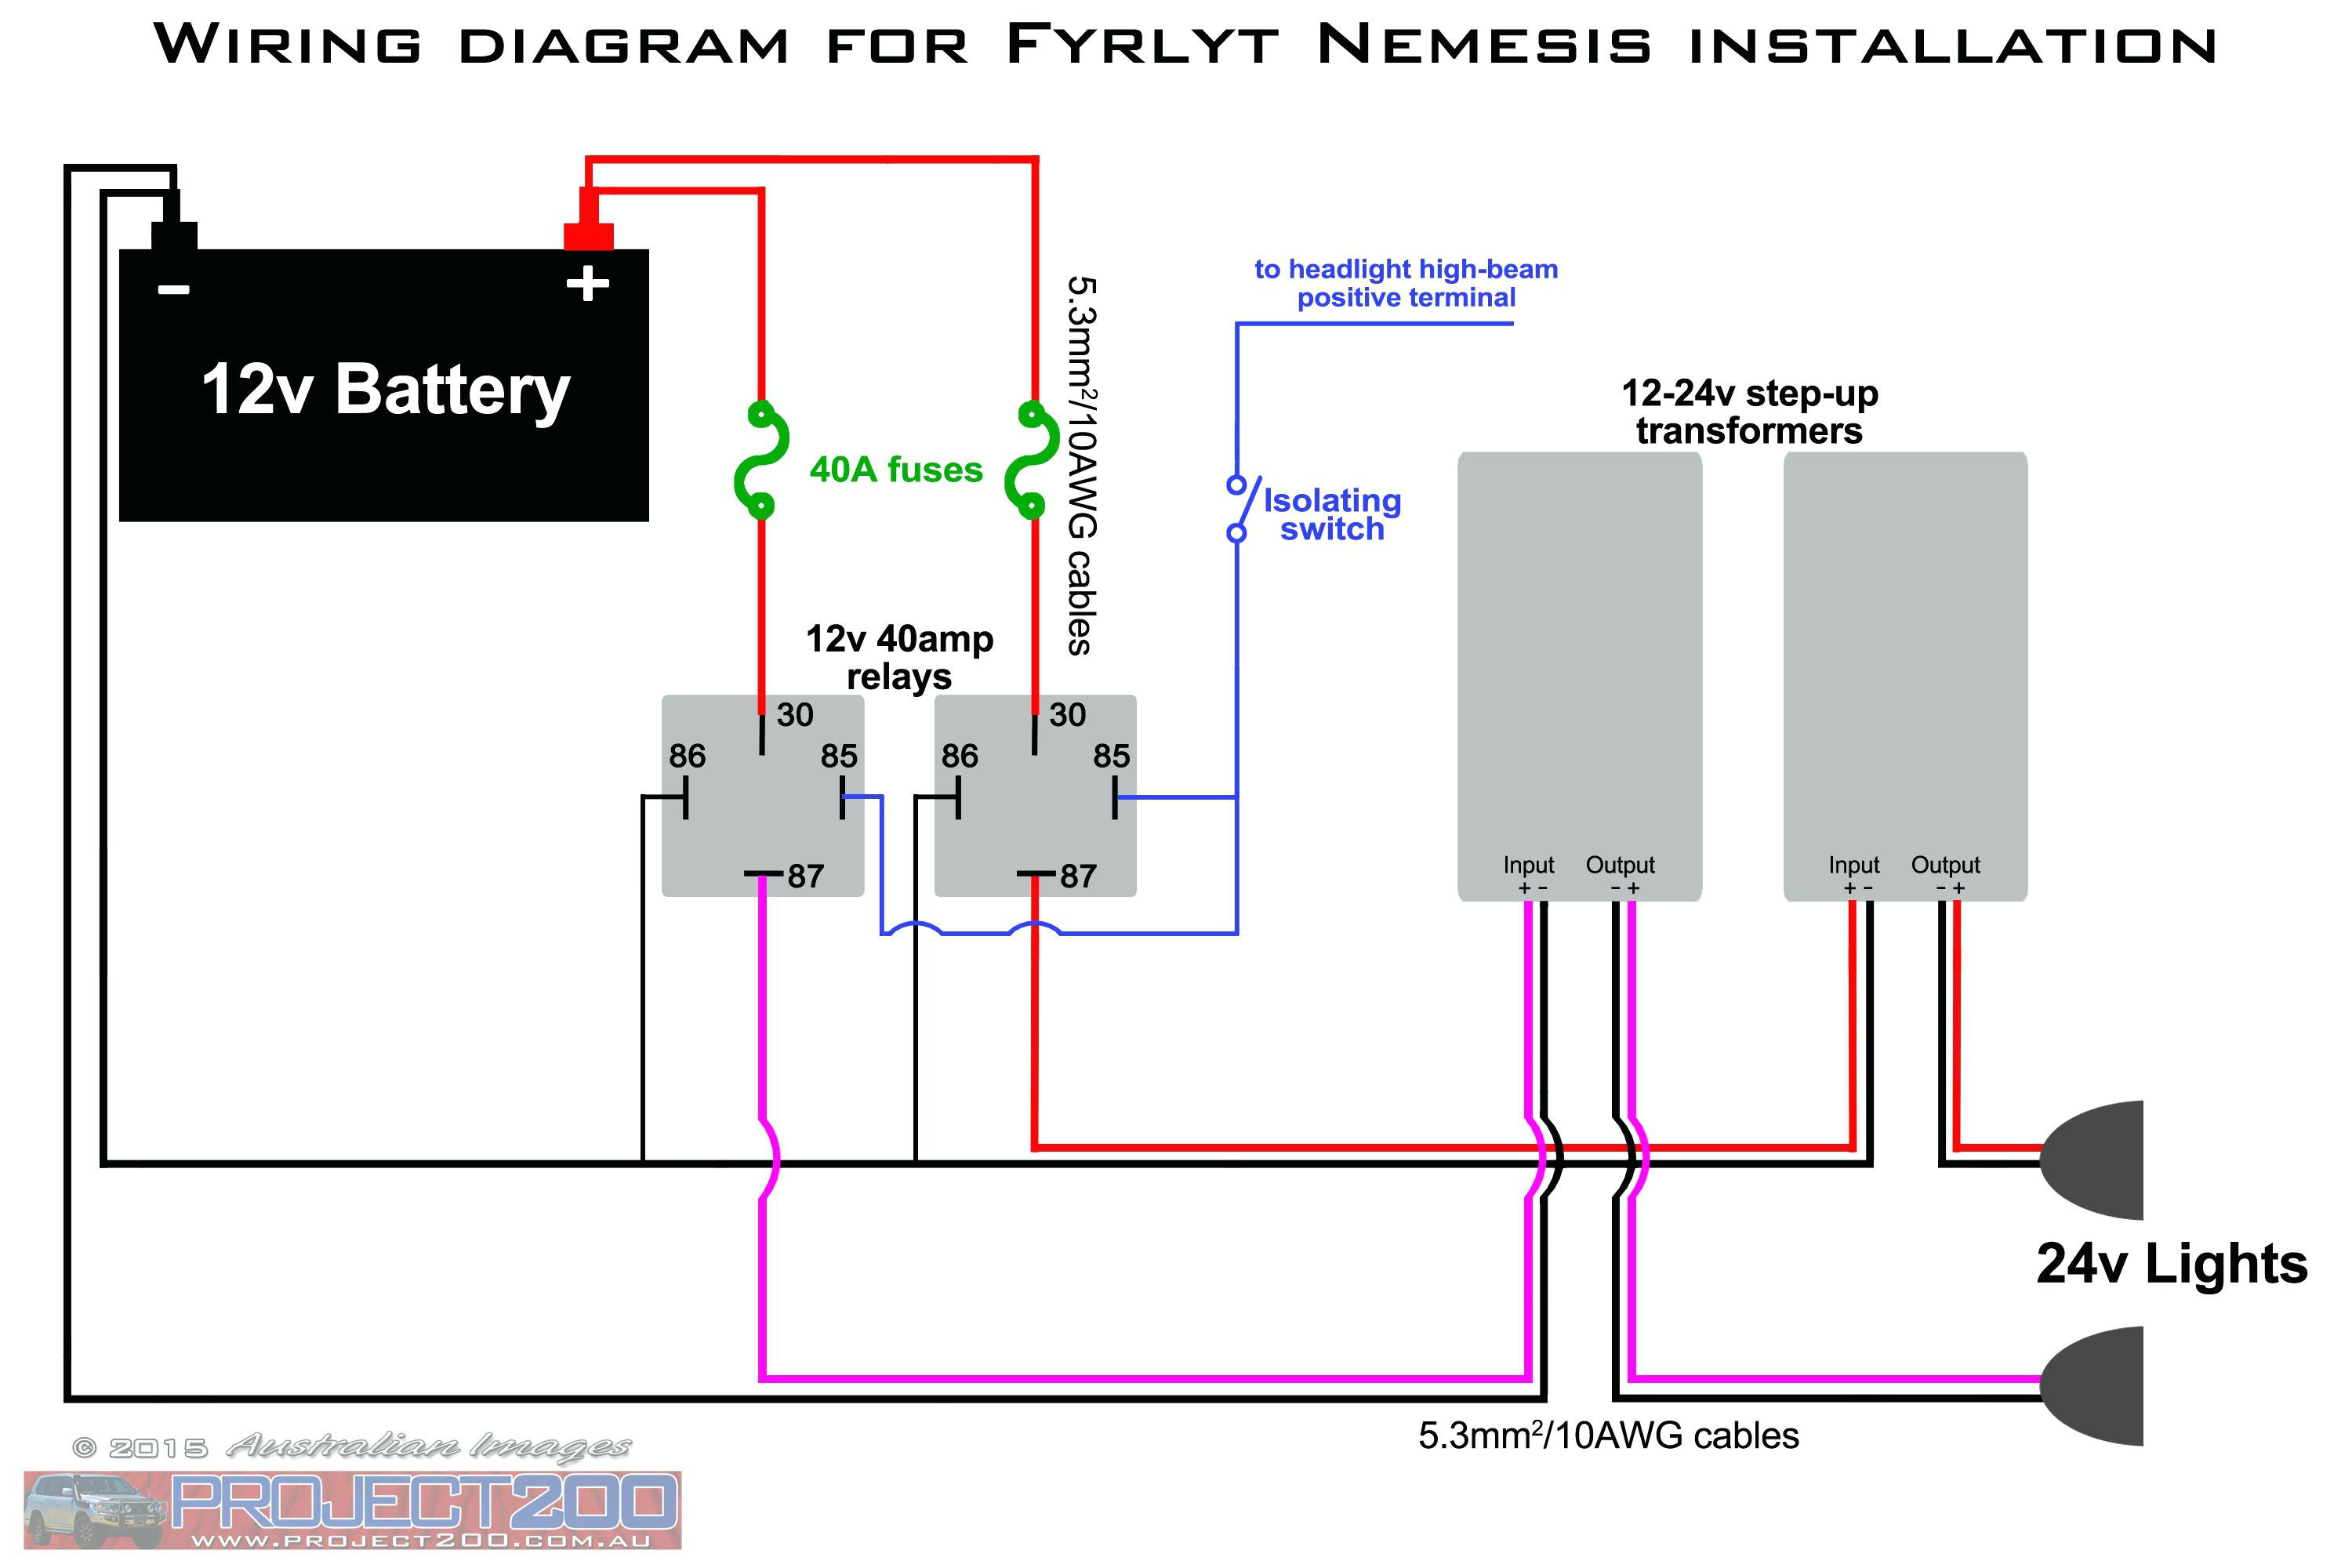 12v Relay Wiring Diagram Spotlights Download | Wiring ... on